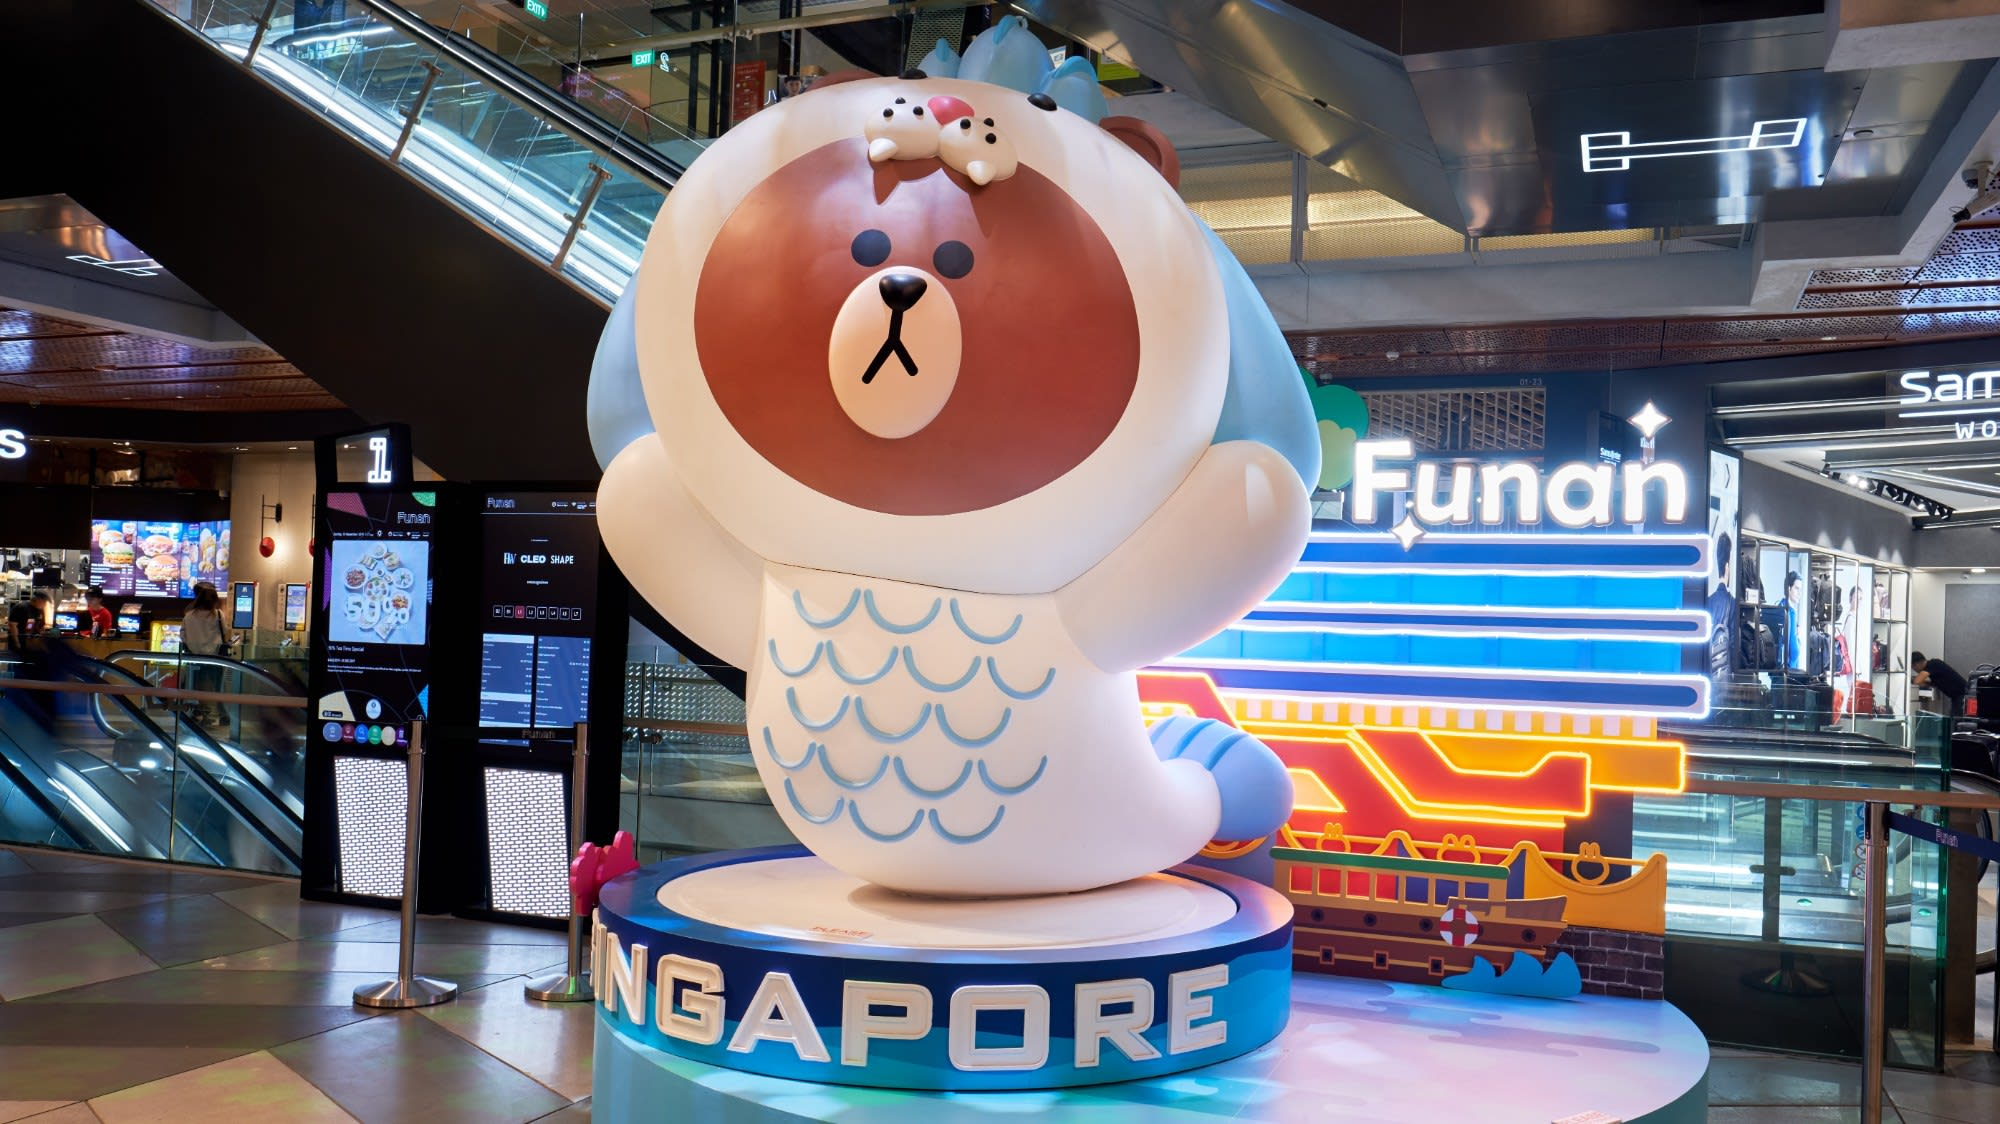 Brown, Cony, Choco and other Line Friends in Singapore | CNA Lifestyle